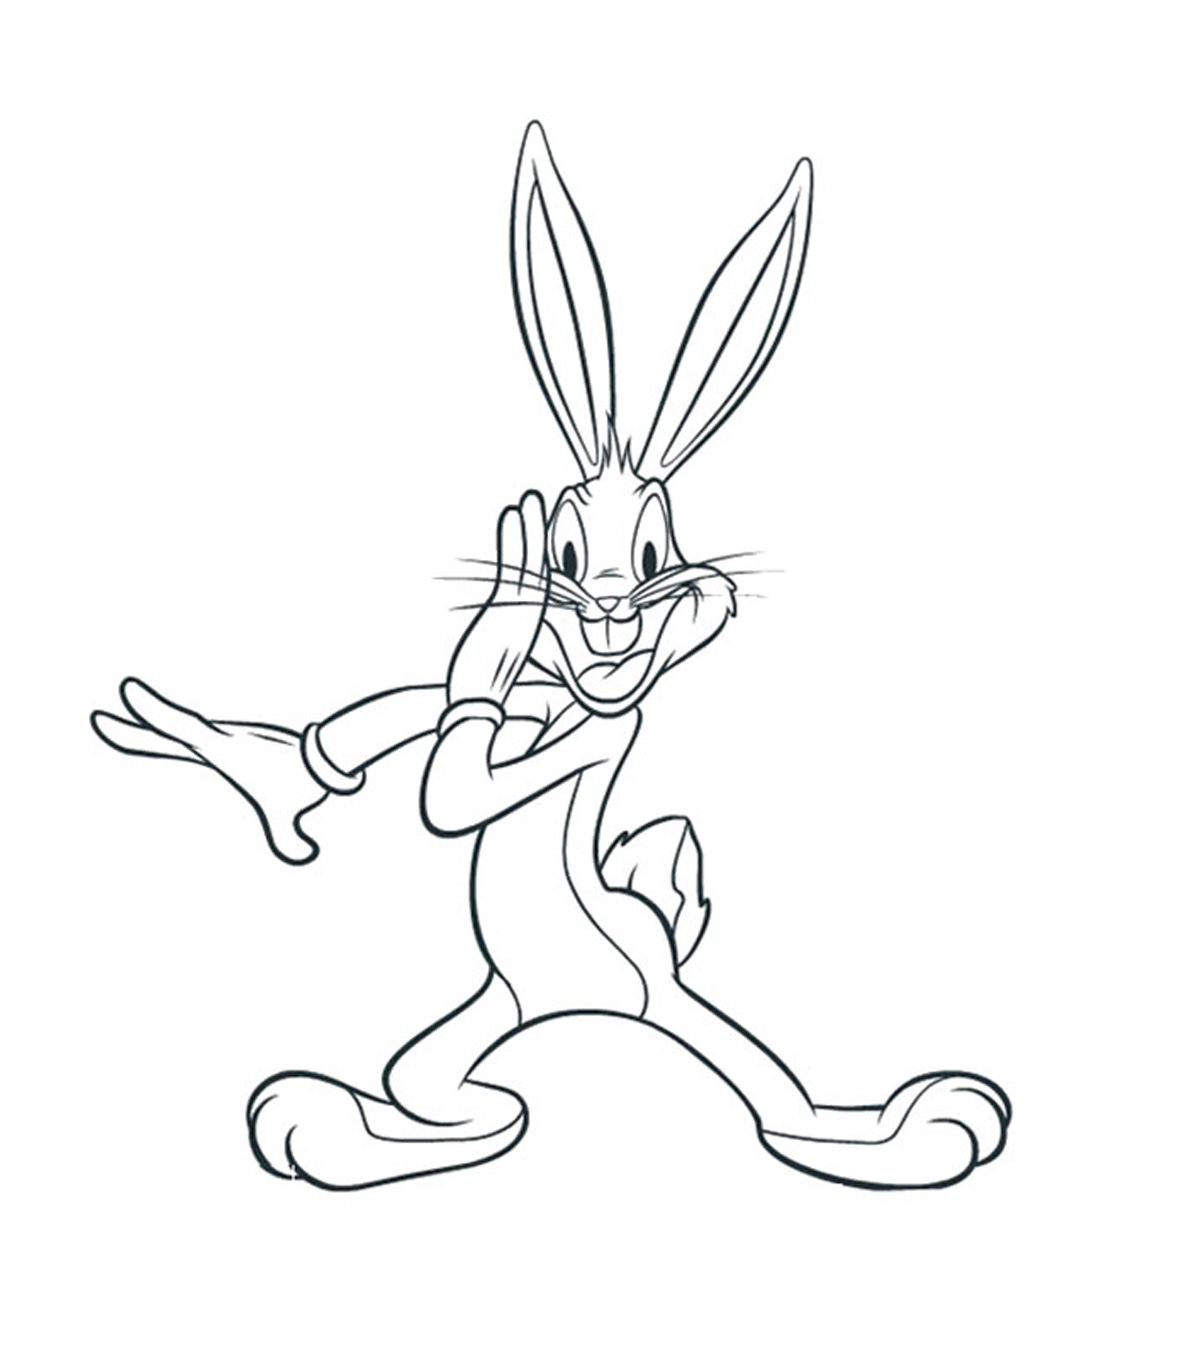 Unique Sunny Bunnies Coloring Pages - cool wallpaper